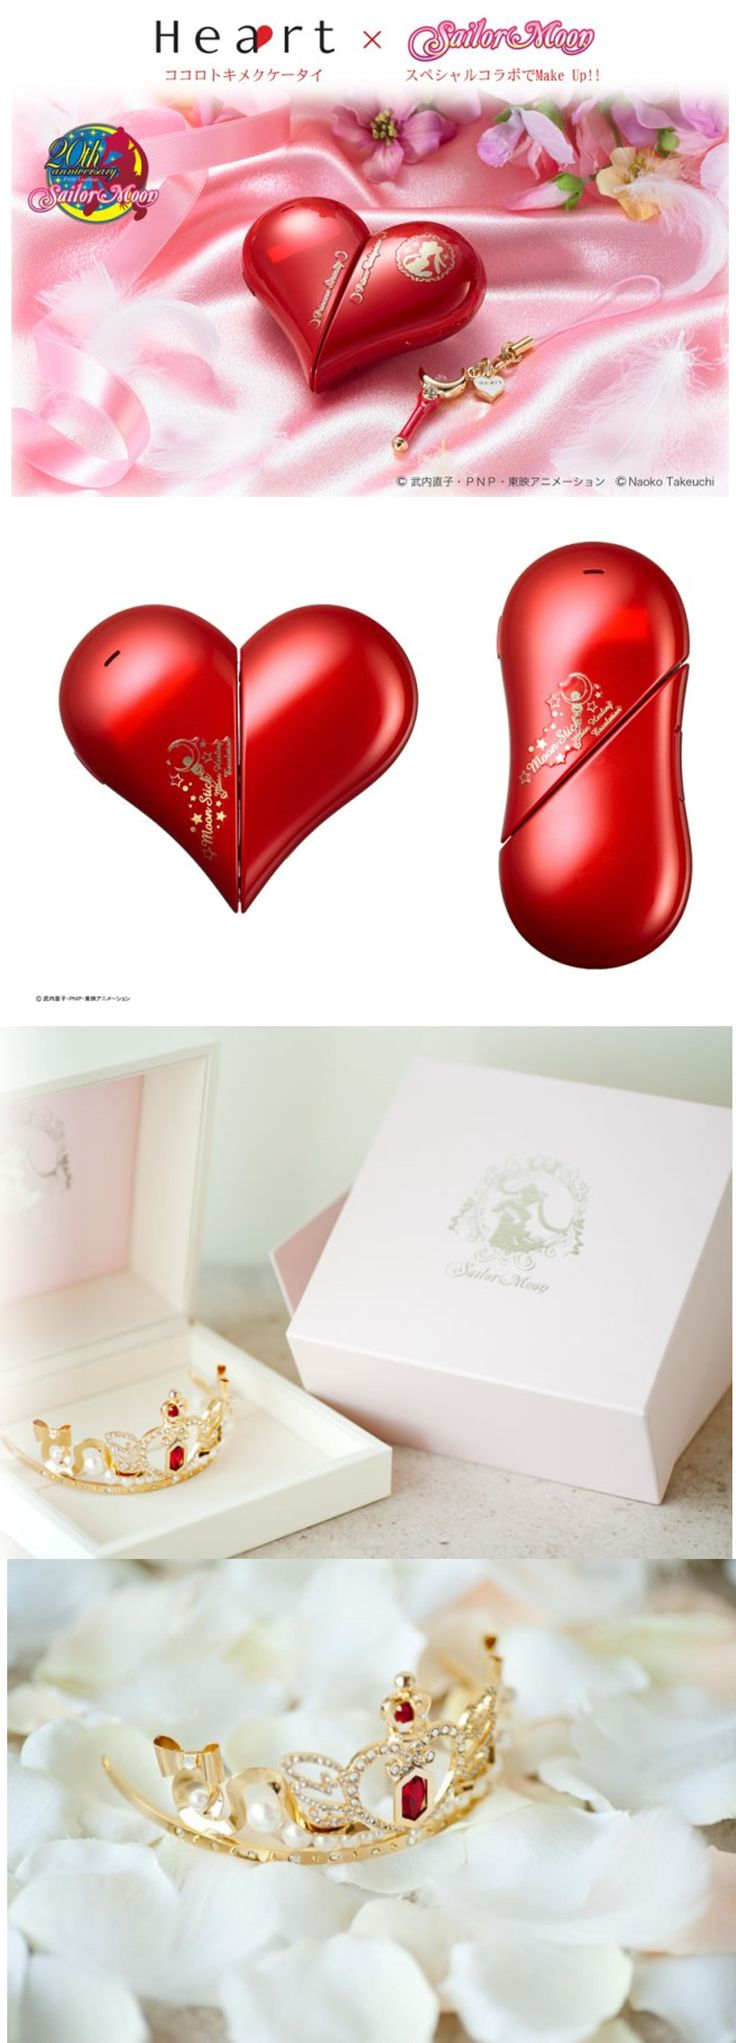 Sailor Moon craze hits overdrive with new official phone and wedding tiara